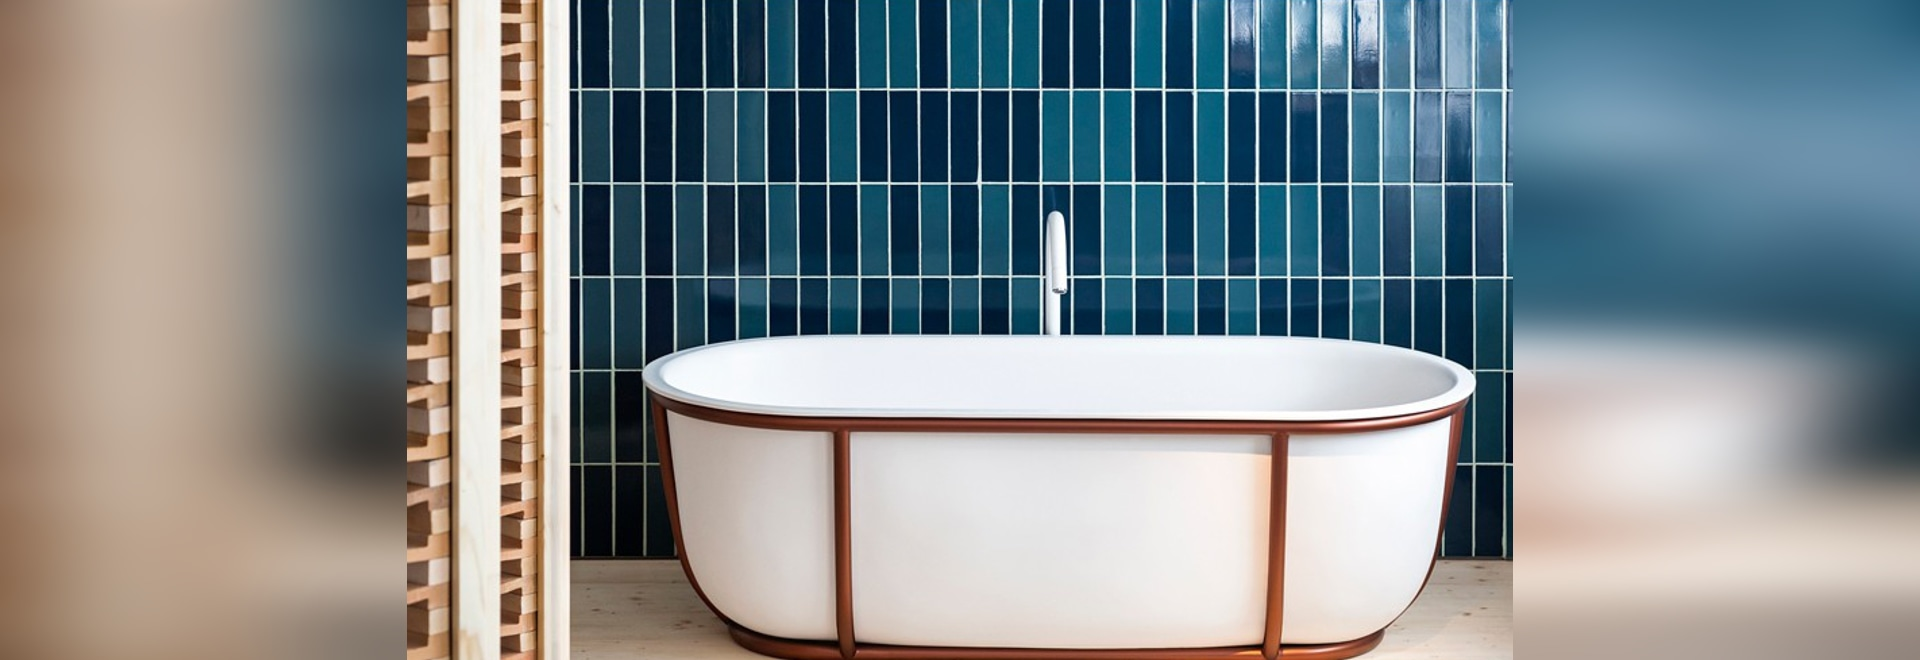 Patricia Urquiolau0027s Cuna + Larian Bathtubs For Agape Combine Classic And  Modern Elements